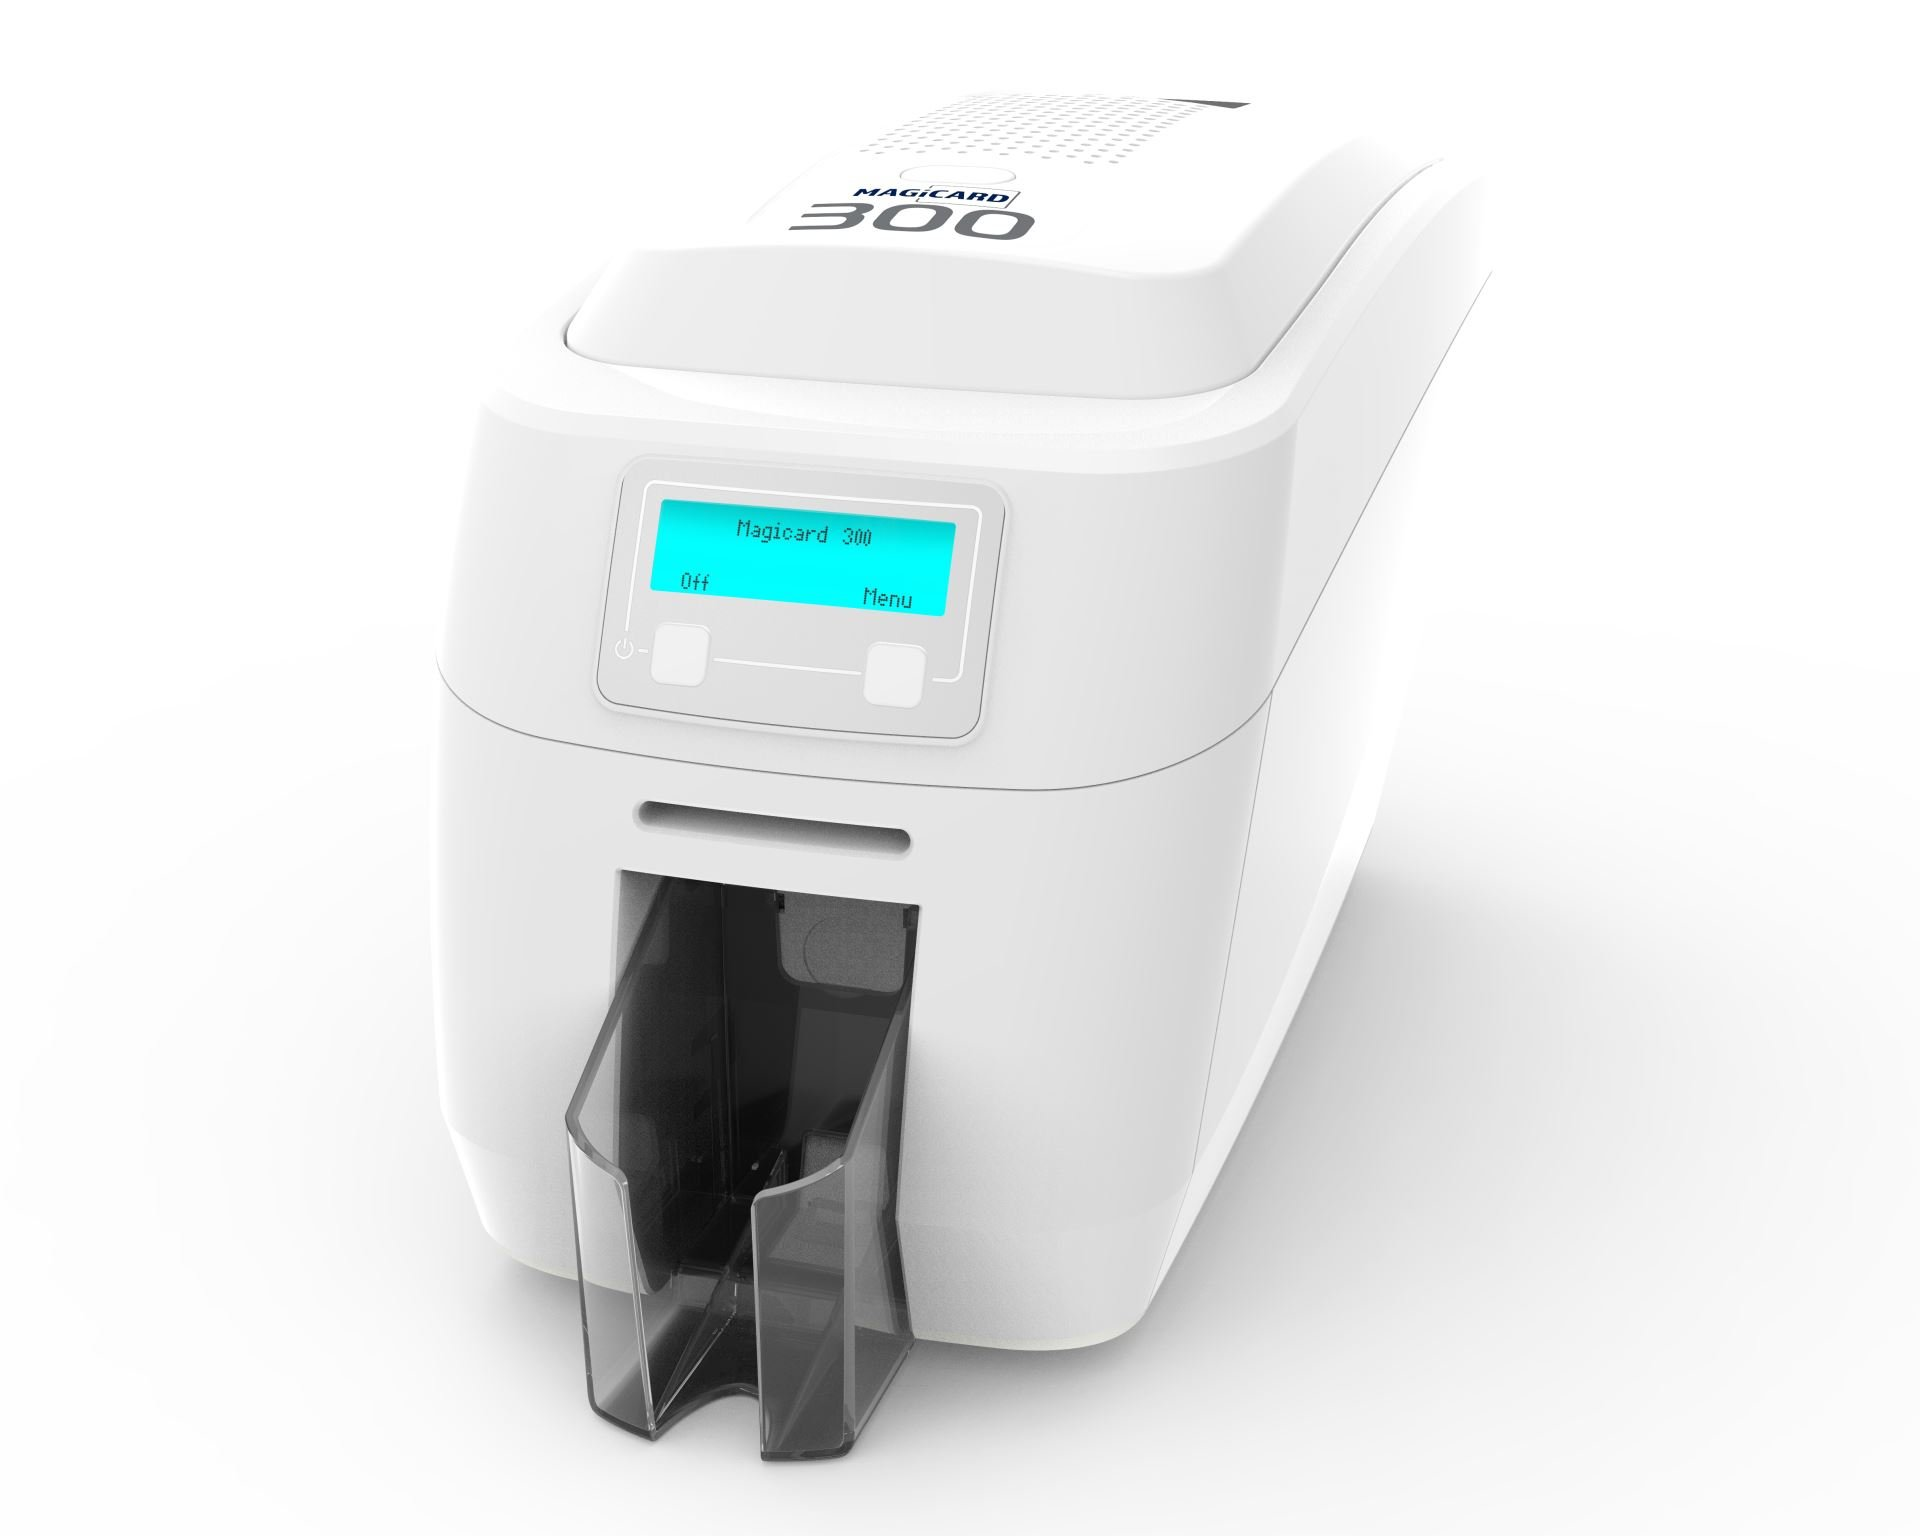 Magicard_300_ID_Card_Printer_with_Magnetic_Stripe_Encoding_3300-0002